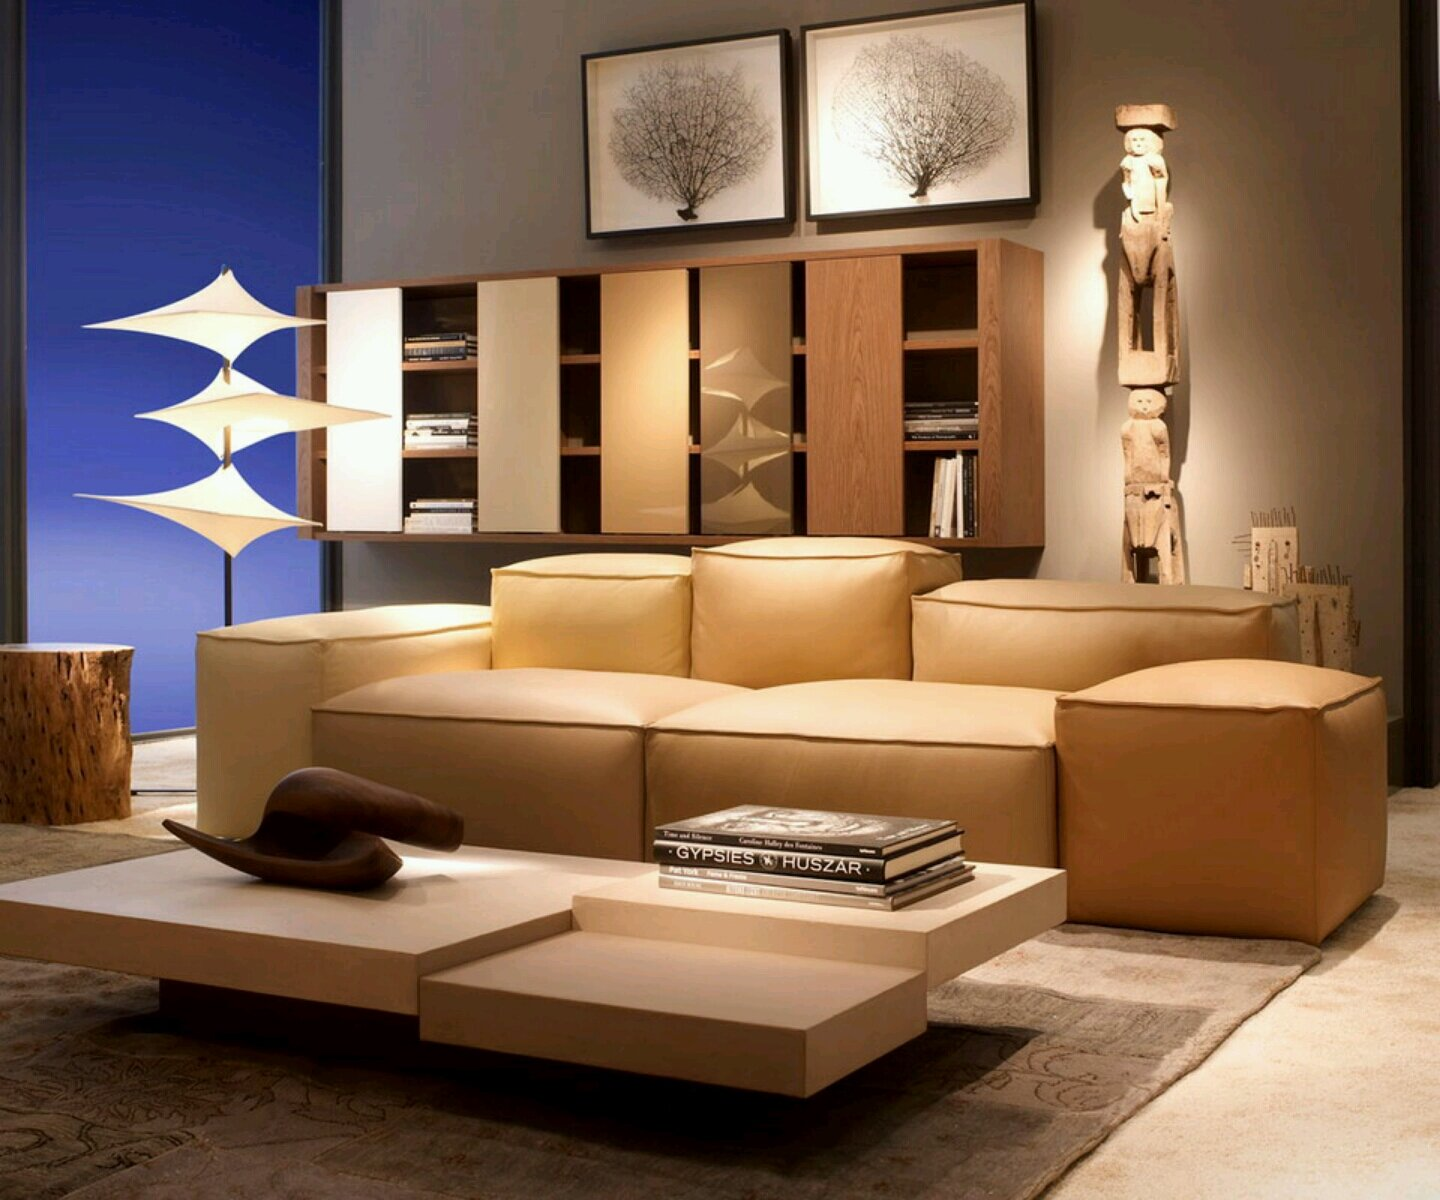 15 really beautiful sofa designs and ideas Furniture interior design ideas